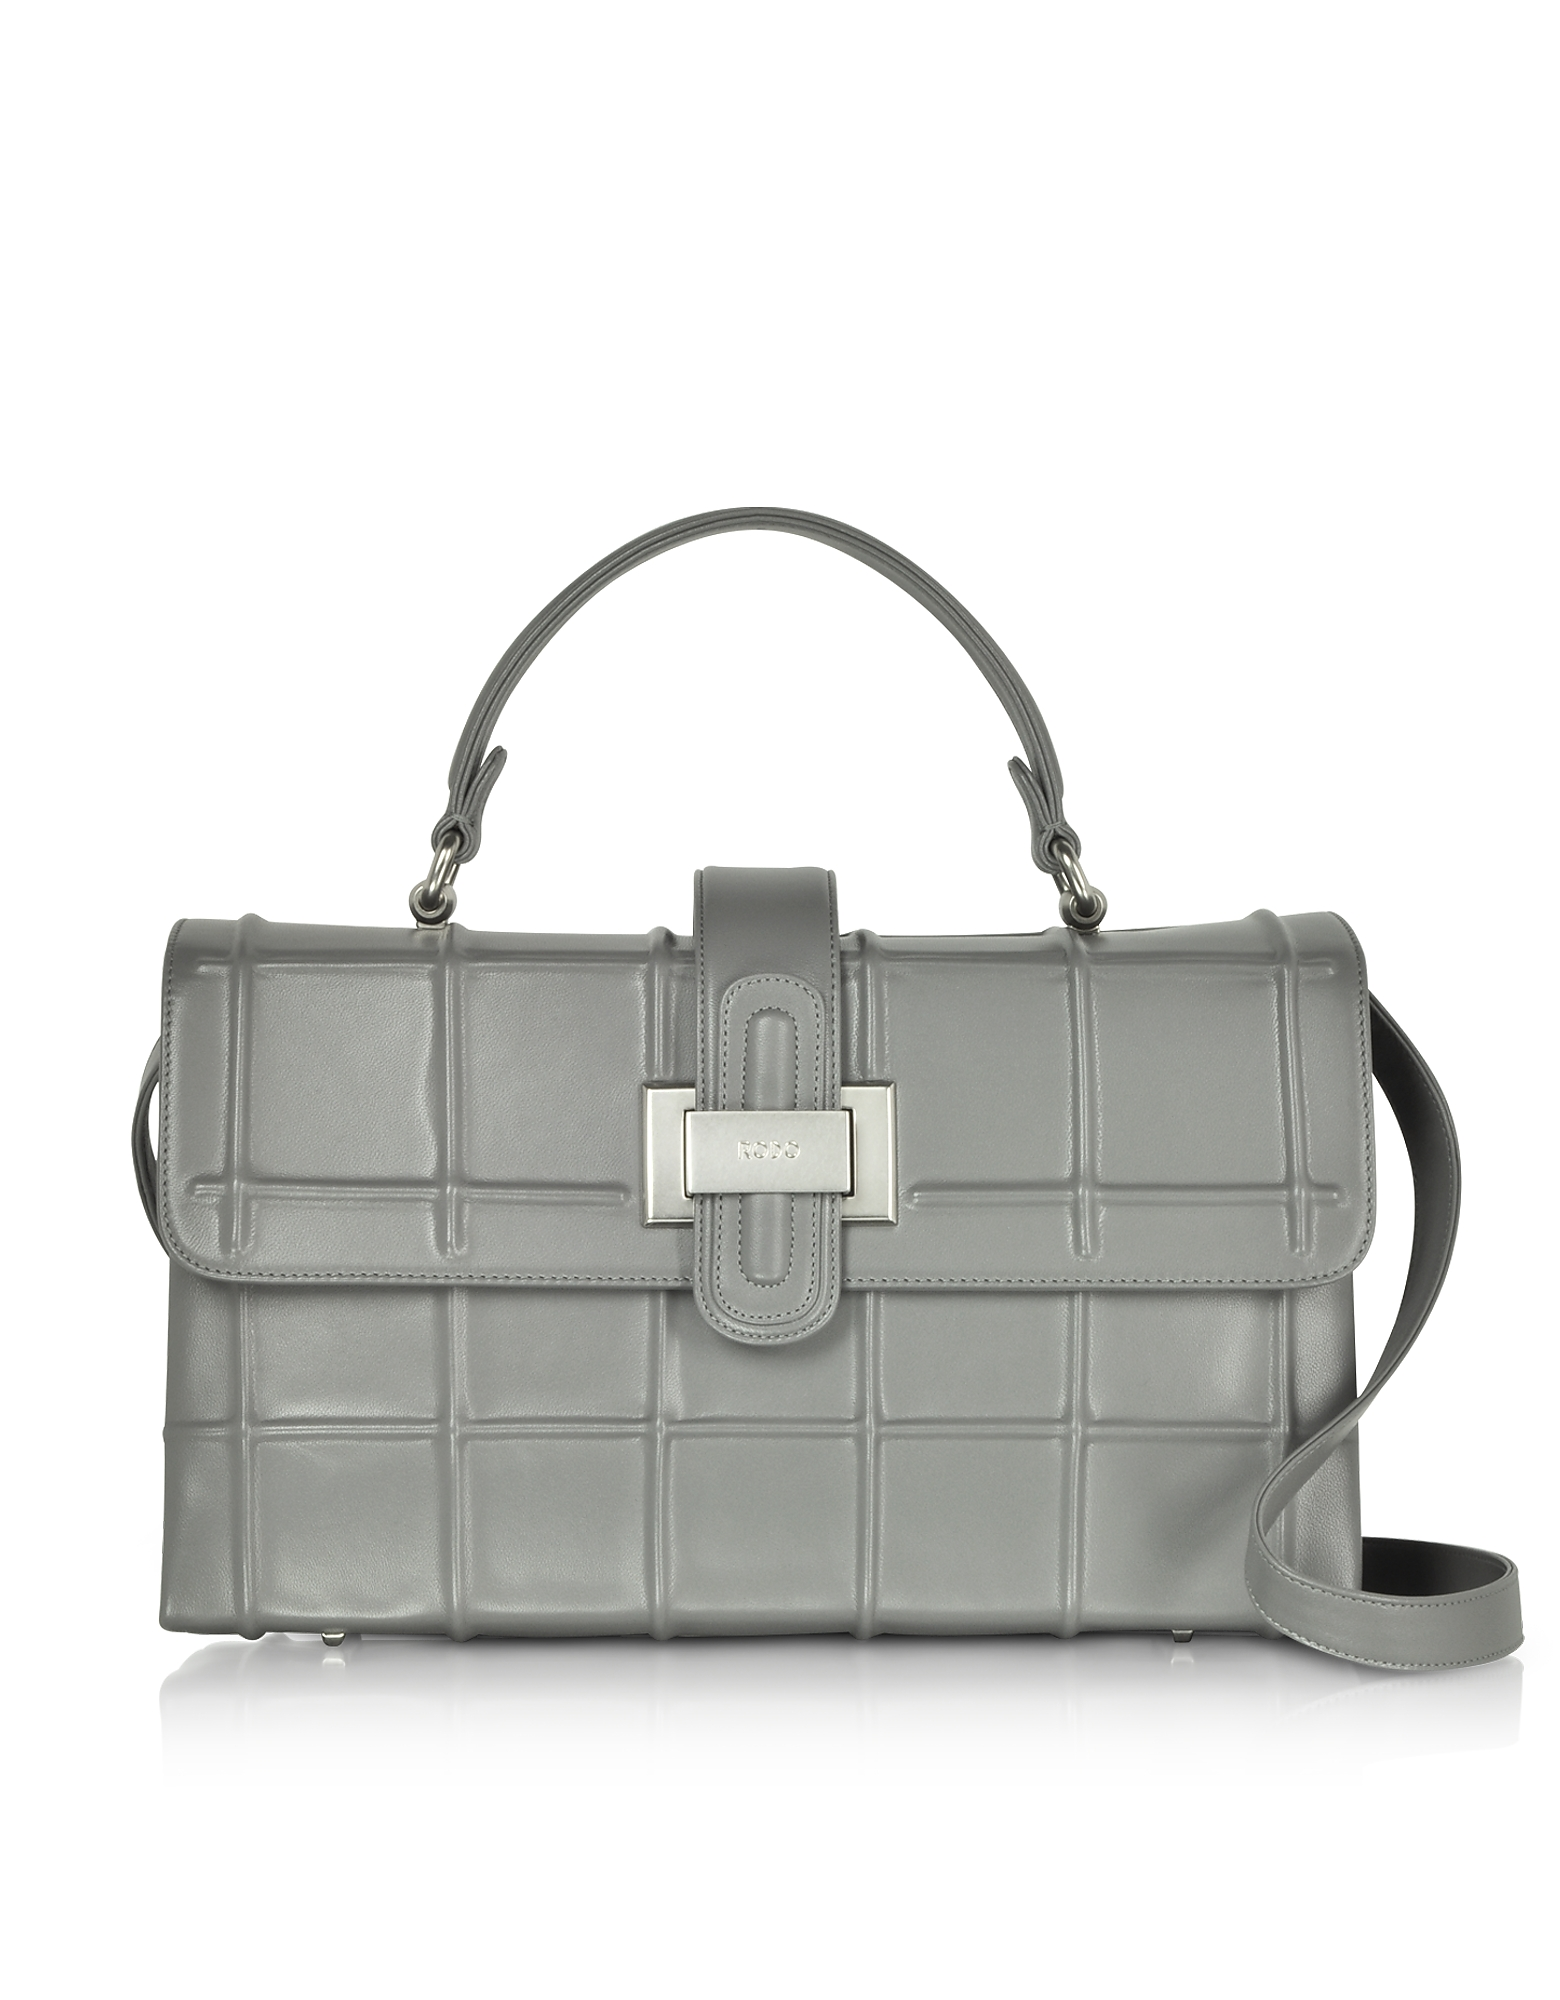 Fog Gray Leather Top Handle Satchel bag w/Shoulder Strap